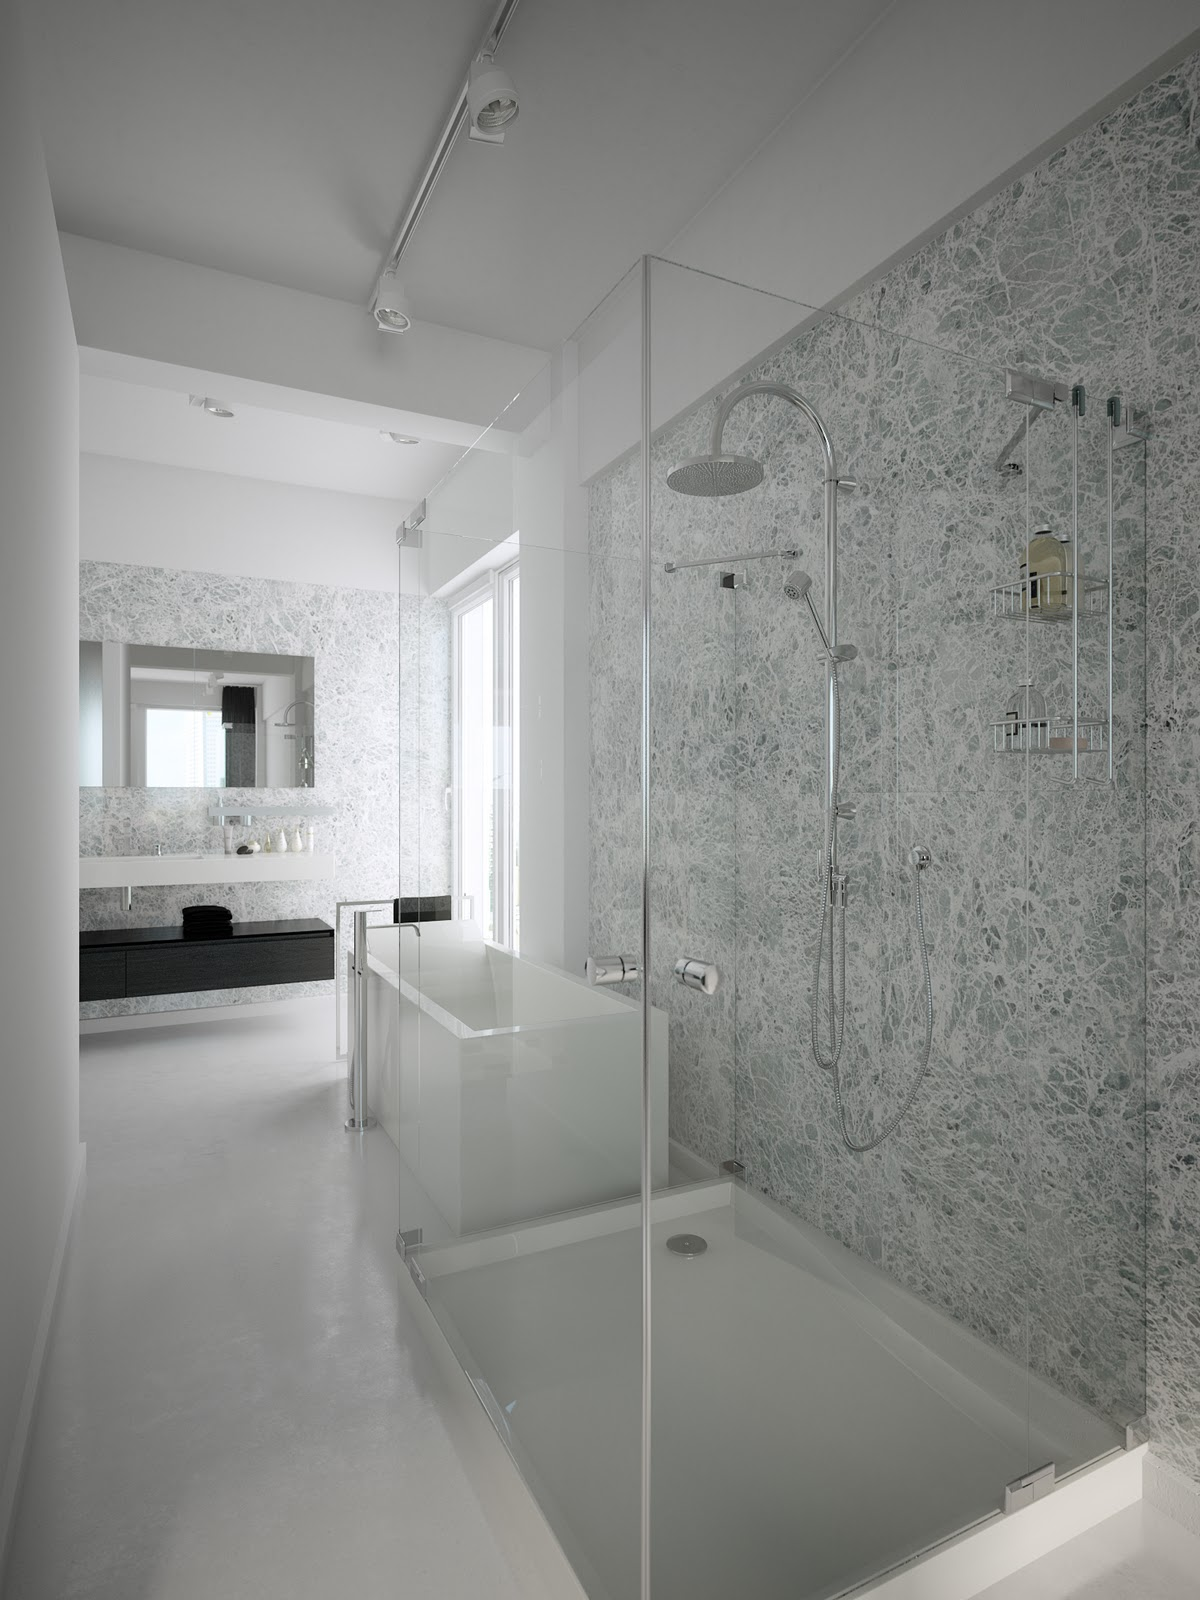 Black white shower room interior design ideas for Bathroom room ideas